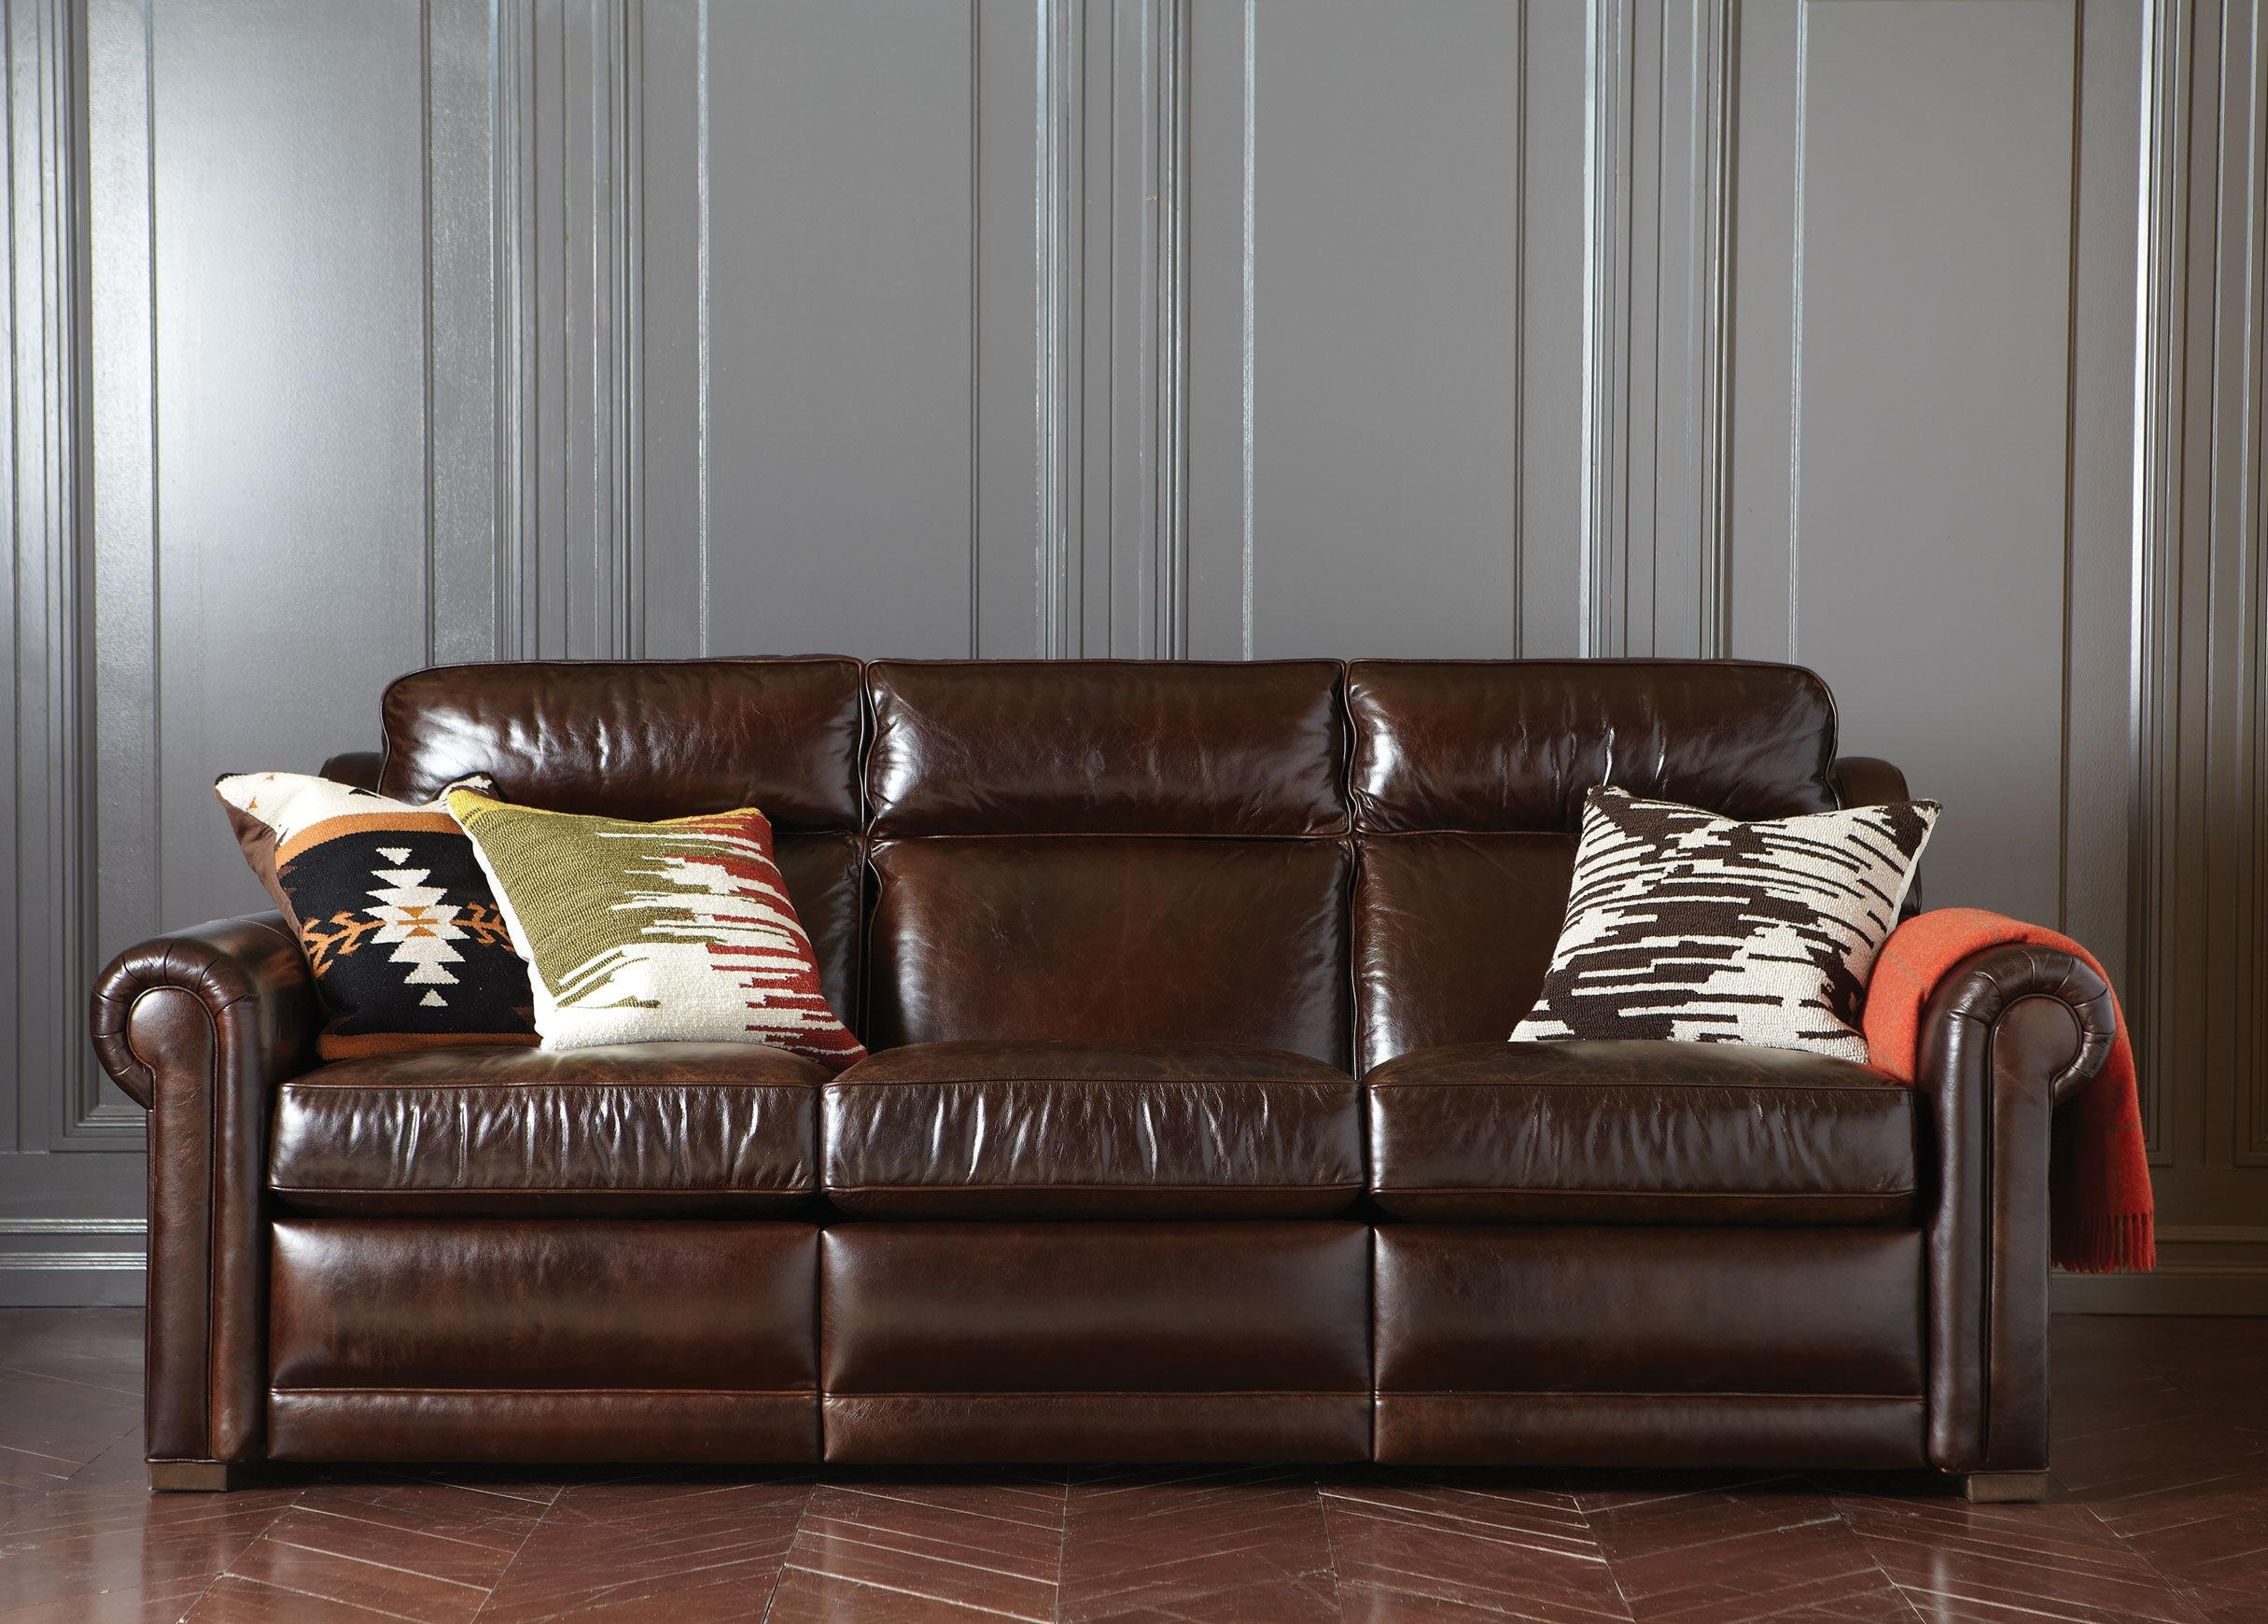 Sofa : Top Chadwick Leather Sofa Style Home Design Gallery On Throughout Chadwick Sofas (Image 18 of 20)